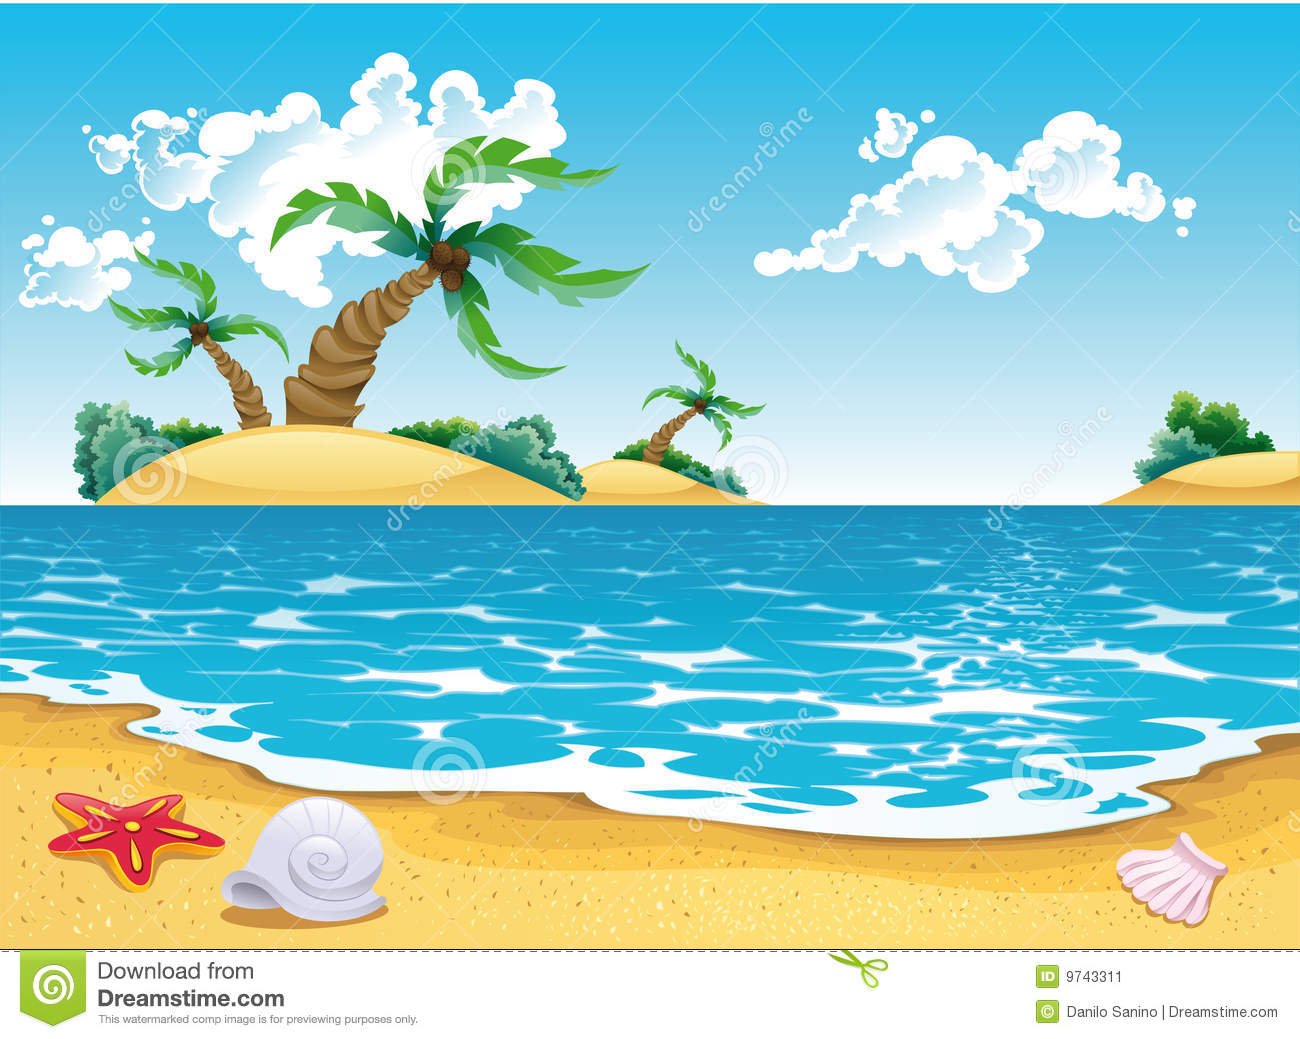 Seascape clipart #6, Download drawings